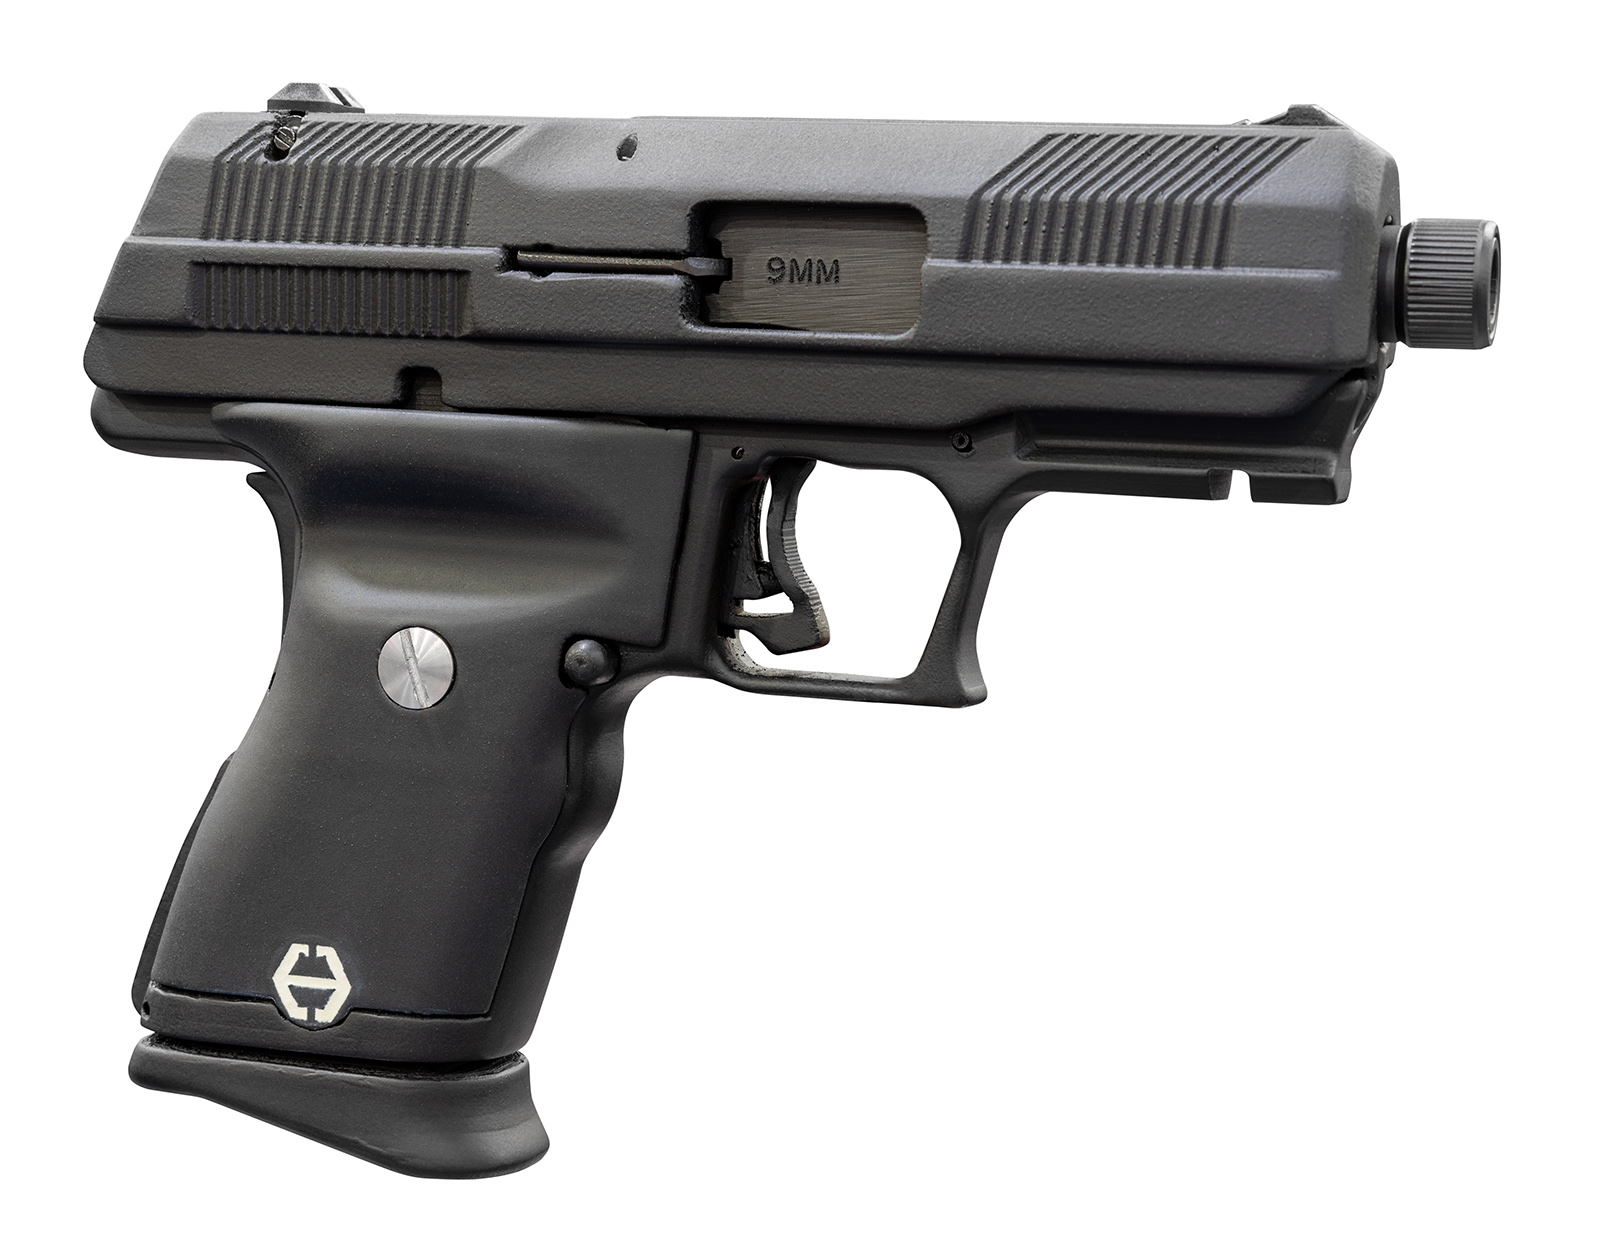 TFB's Exclusive First Look at Hi-Point's New $200 Pistol